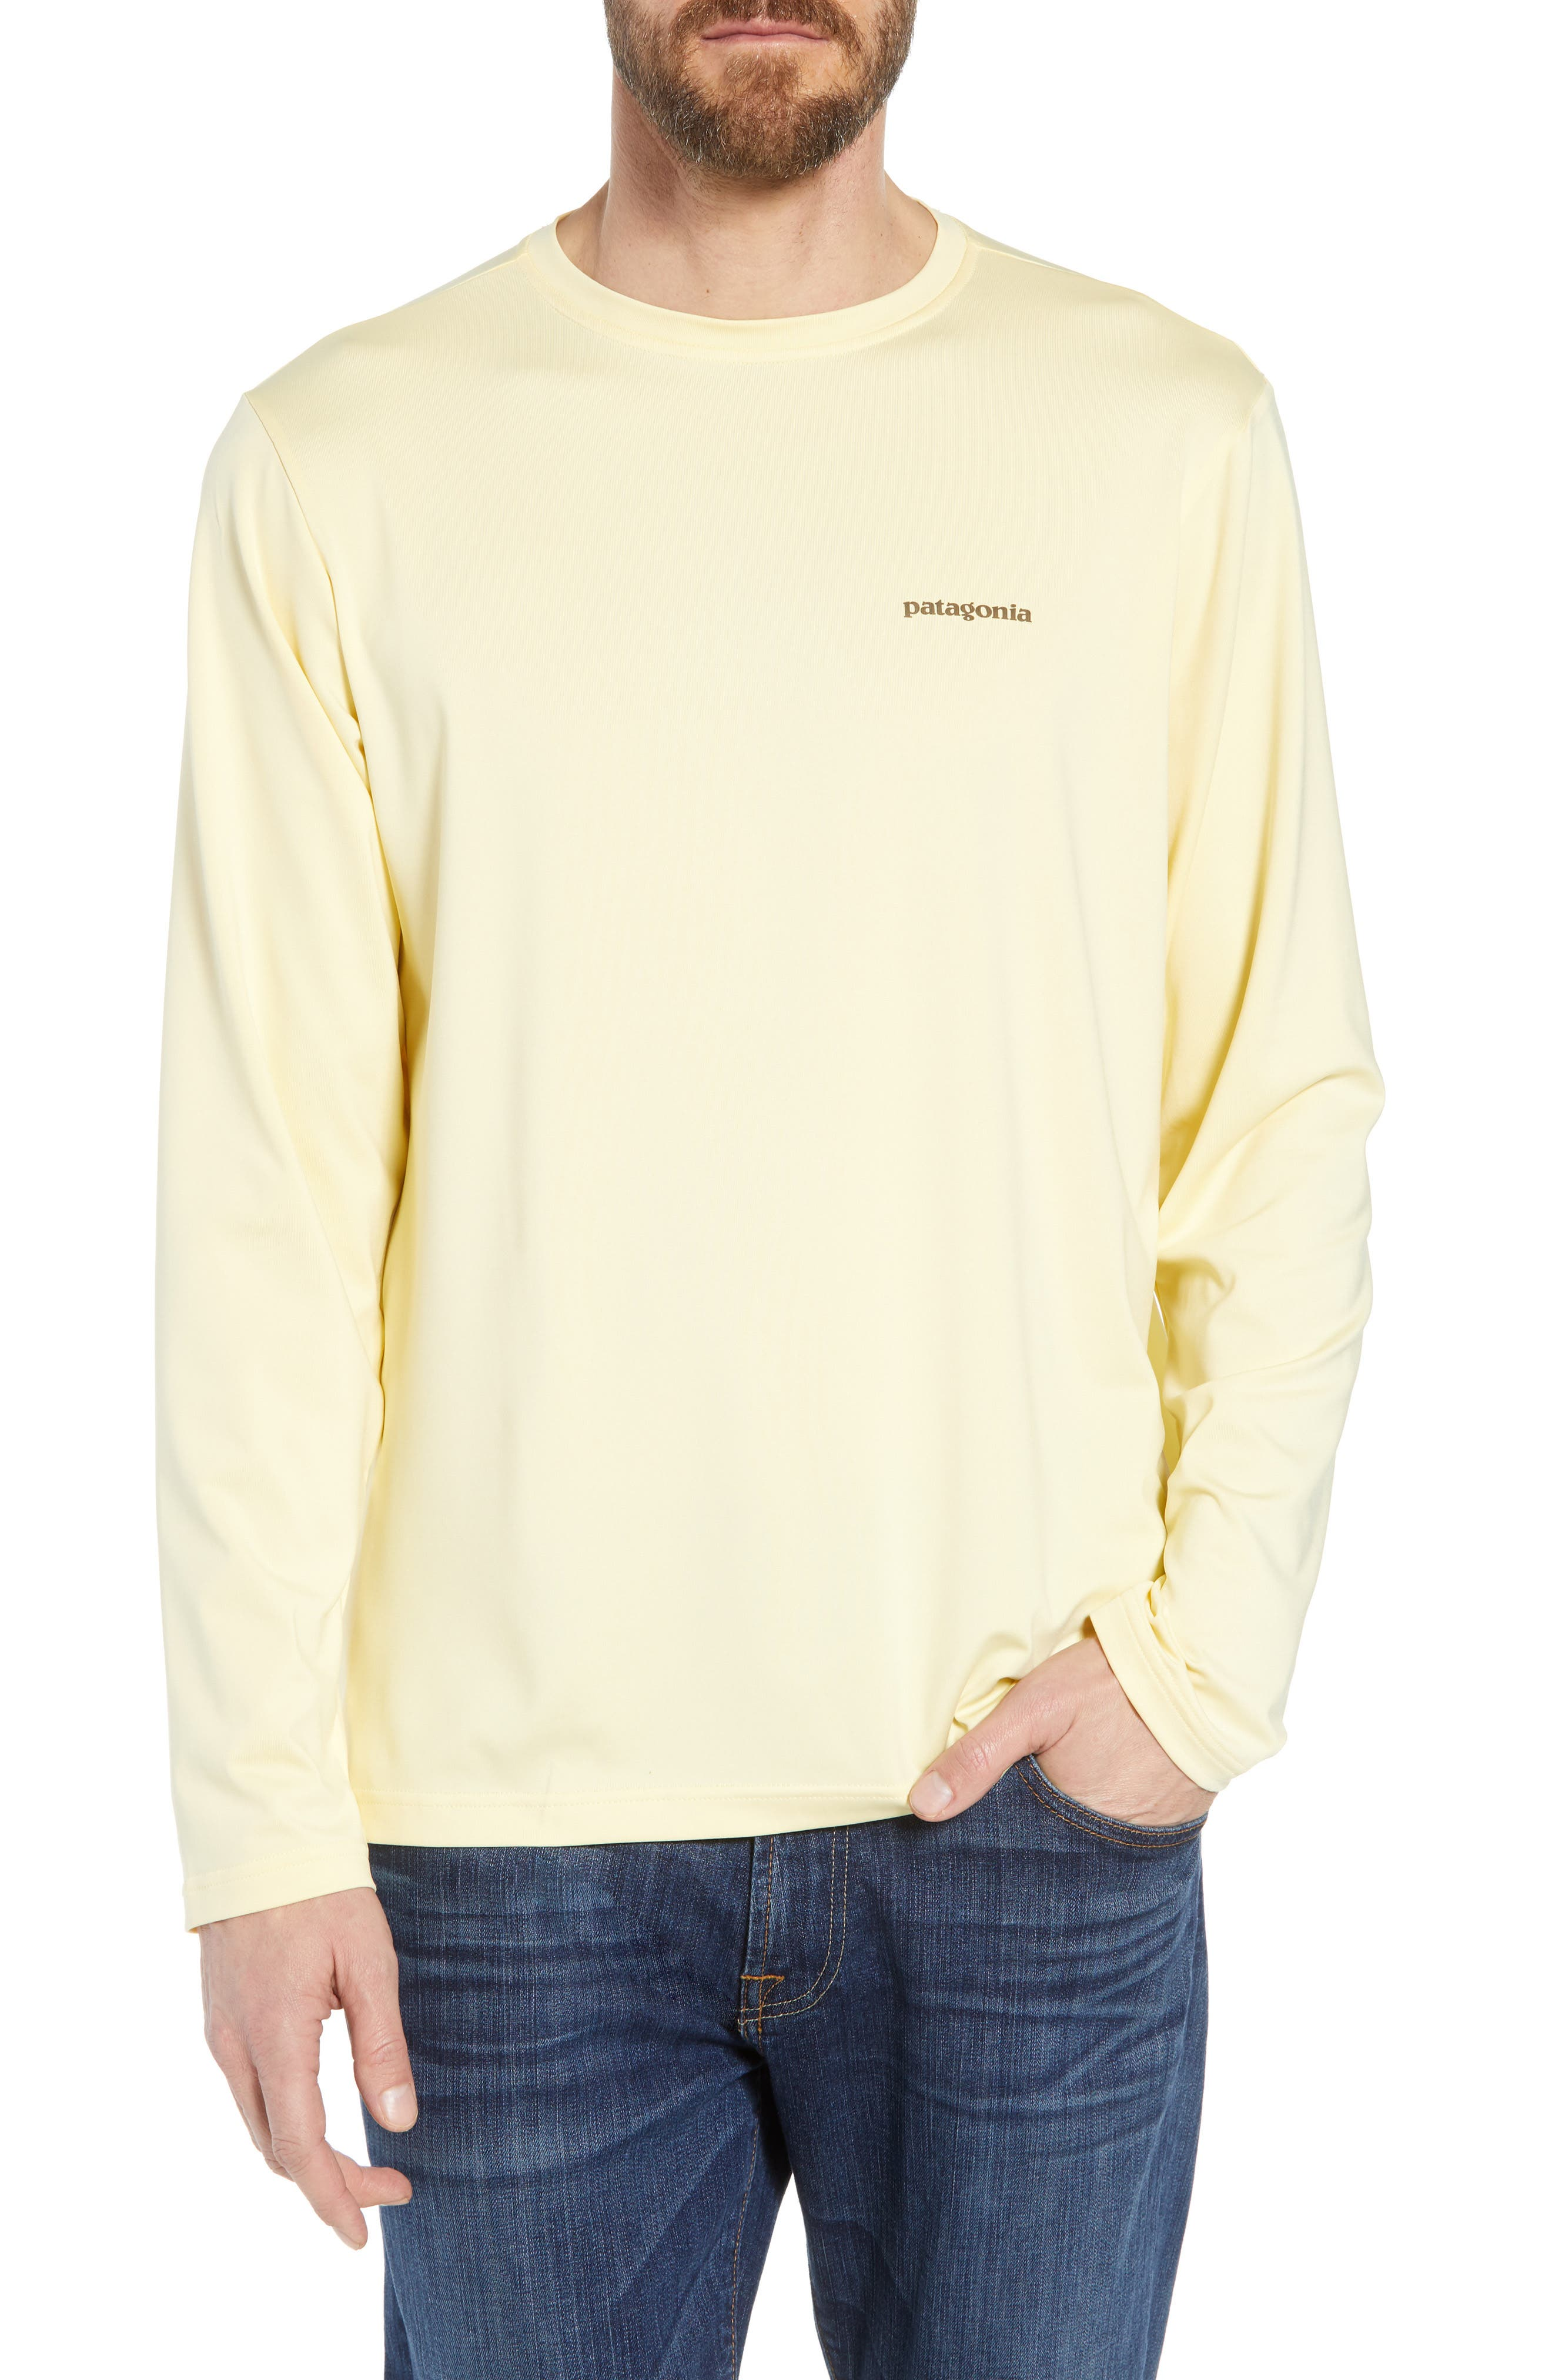 Tech Fish Graphic Long Sleeve T-Shirt,                             Main thumbnail 1, color,                             Lucky Fly/ Crest Yellow